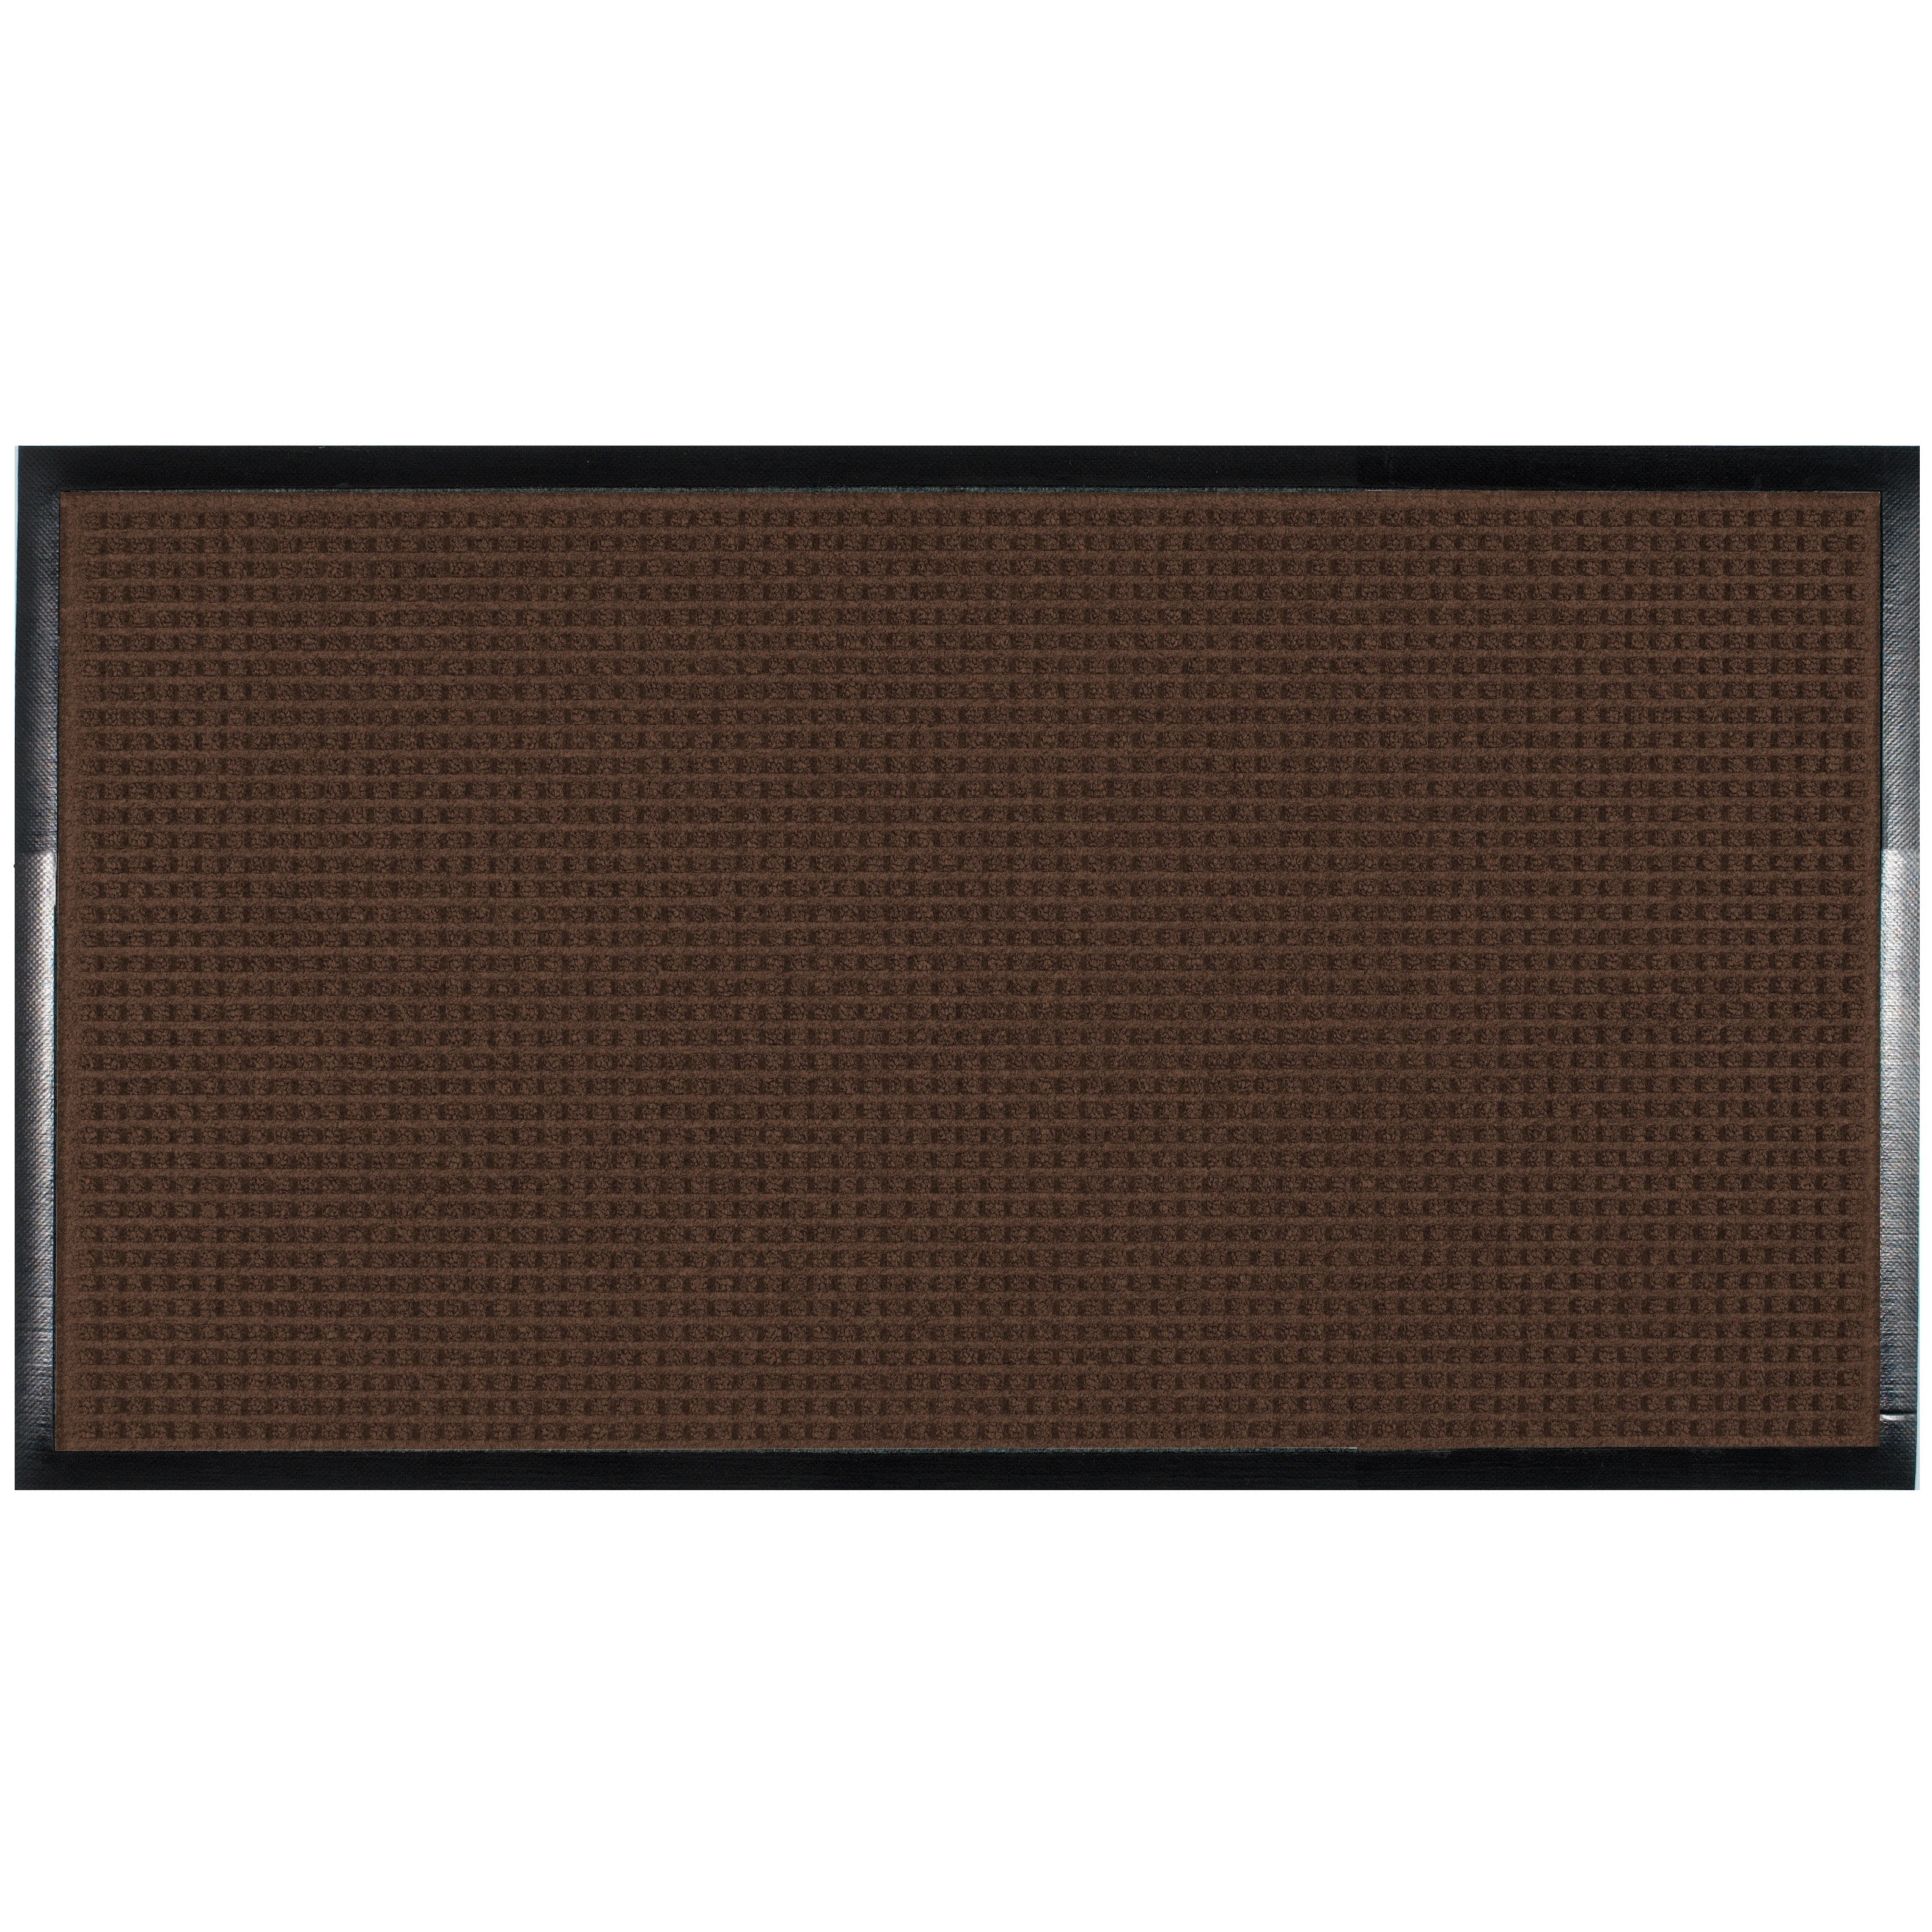 3a6cfe1f0354 Guardian Waterguard Indoor/outdoor Wiper Scraper Floor Mat Rubber/nylon 3x4  R. About this product. Picture 1 of 5; Picture 2 of 5; Picture 3 of 5 ...